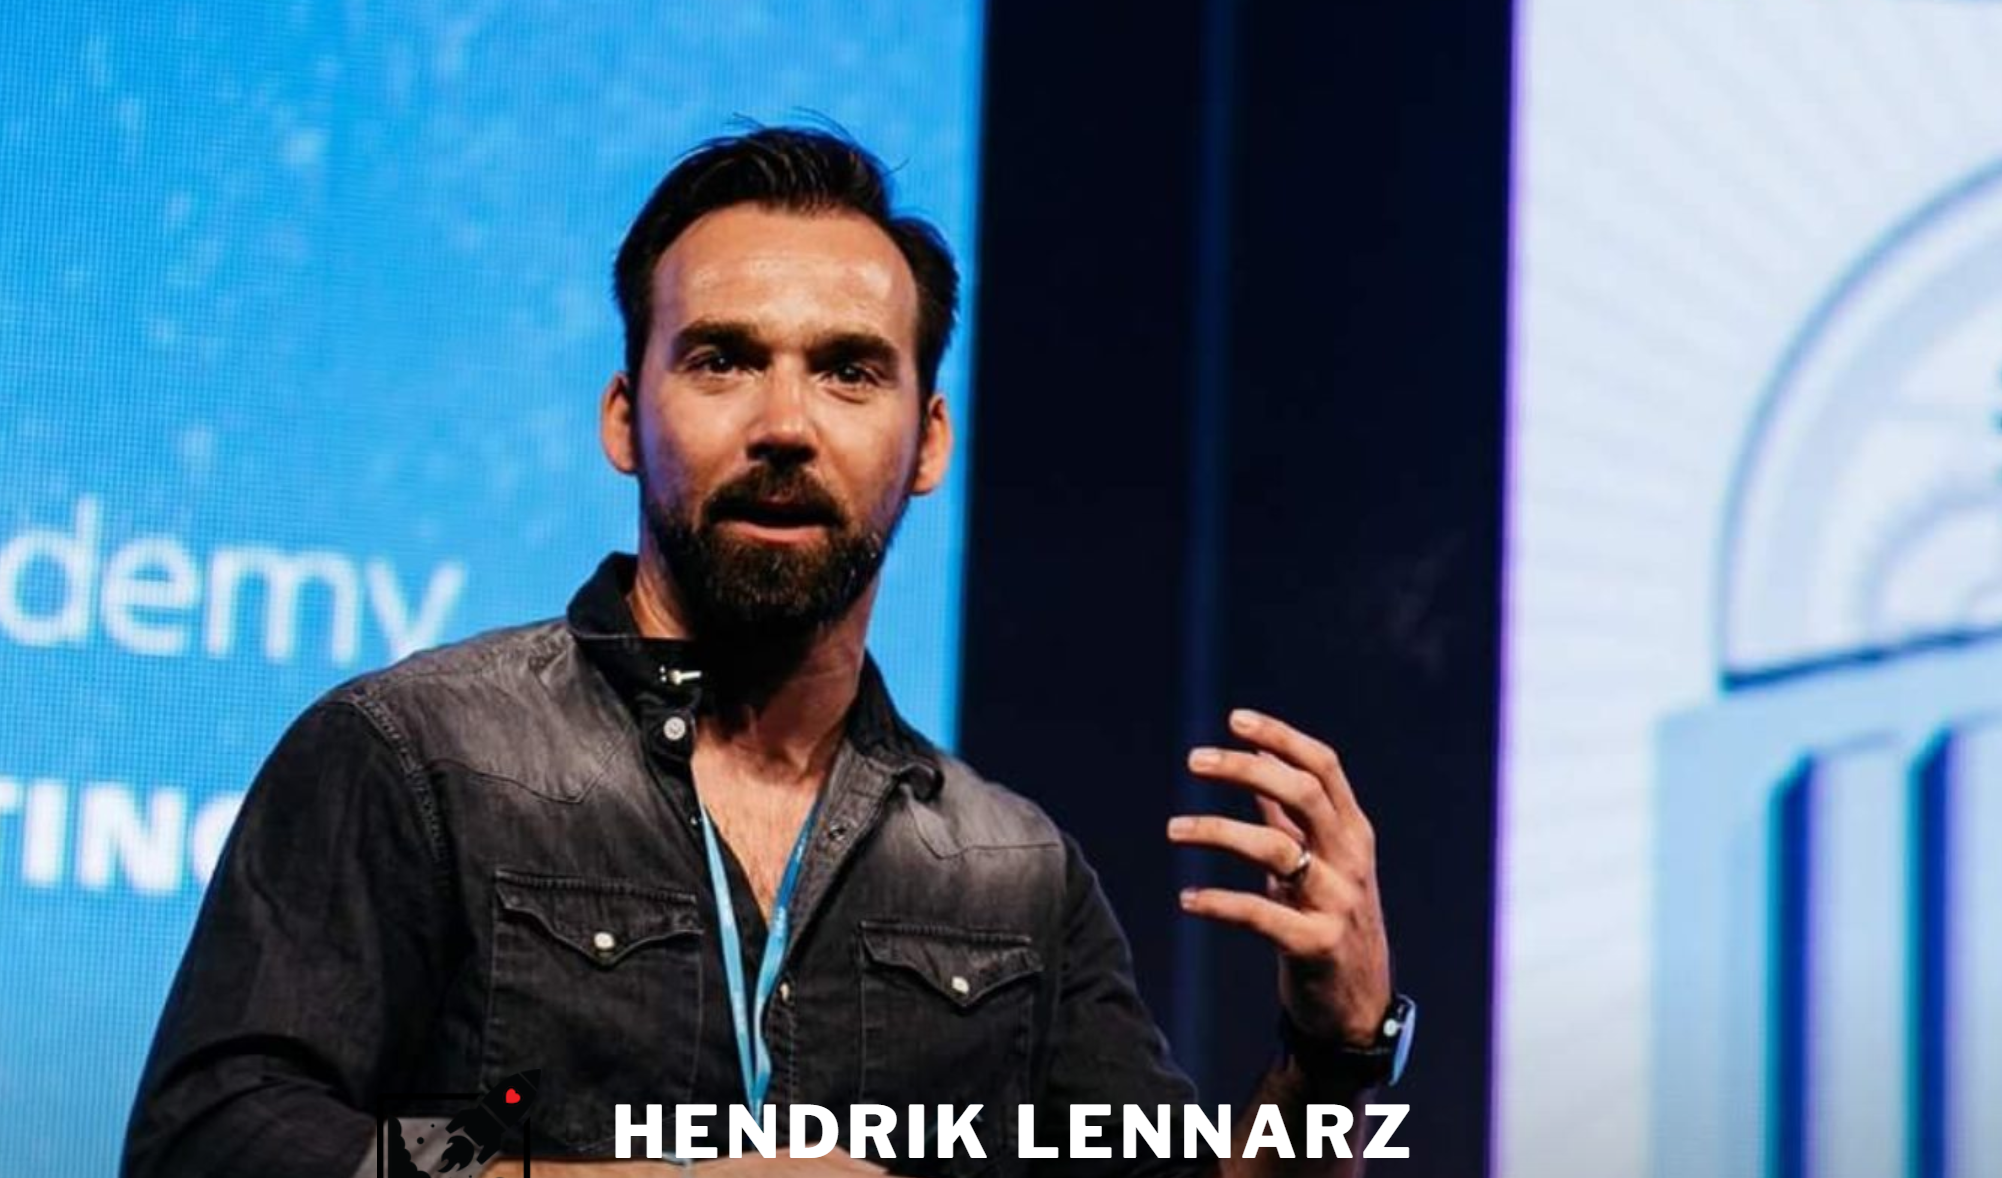 Hendrik Lennarz Interview About Growth Hacking at SMXL MIlan 2018